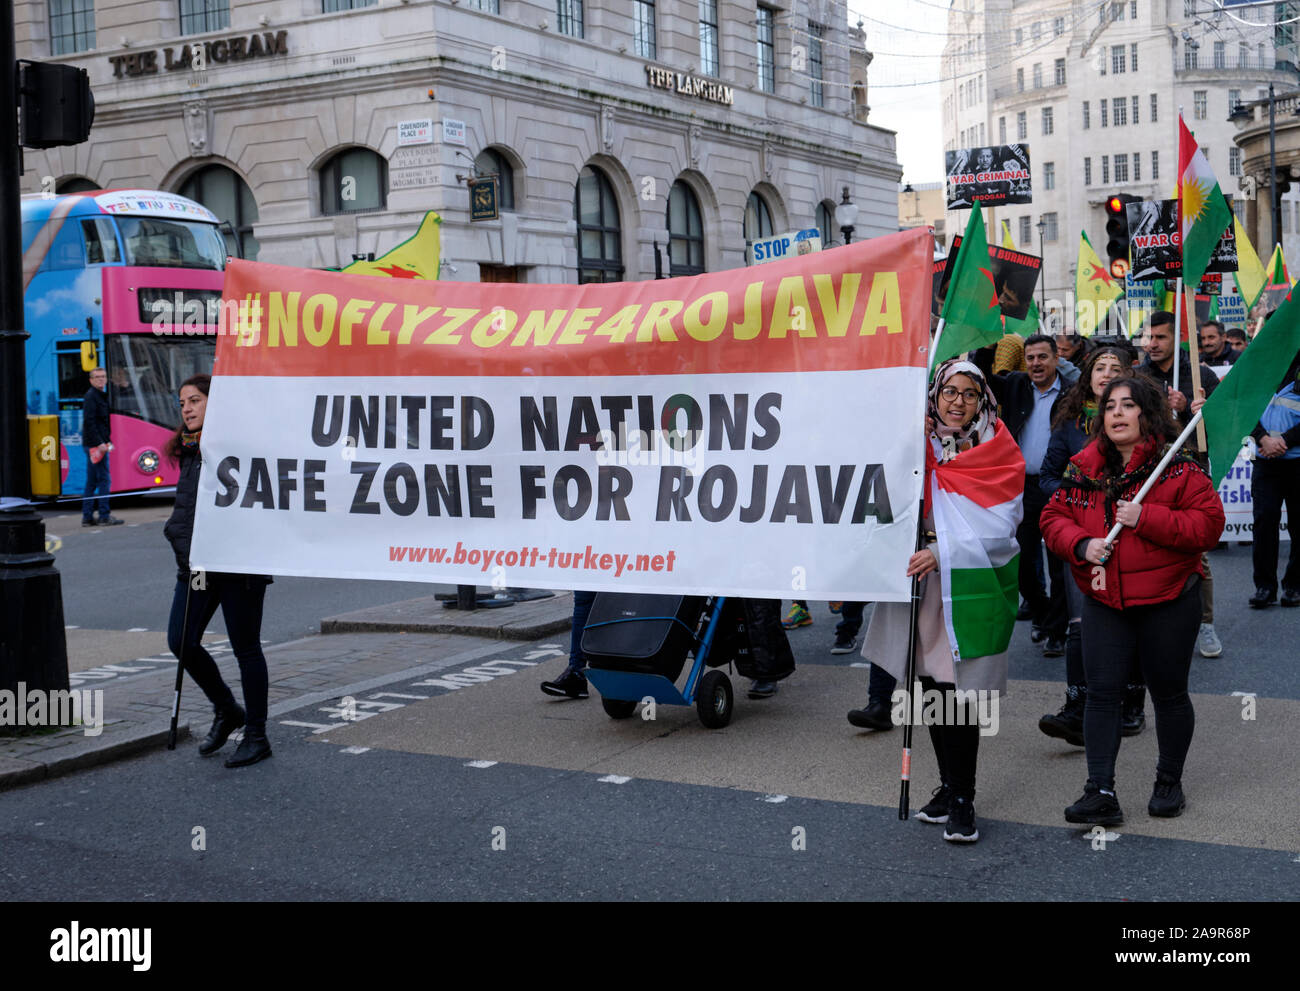 London, UK. 17th Nov, 2019. UK based Kurds leading a rally in street of London to denounce the invasion of Rojava by the Turkish state, and demand international nations to take action and for the British public to be in solidarity with the Kurdish struggle. Credit: jf pelletier/Alamy Live News Stock Photo